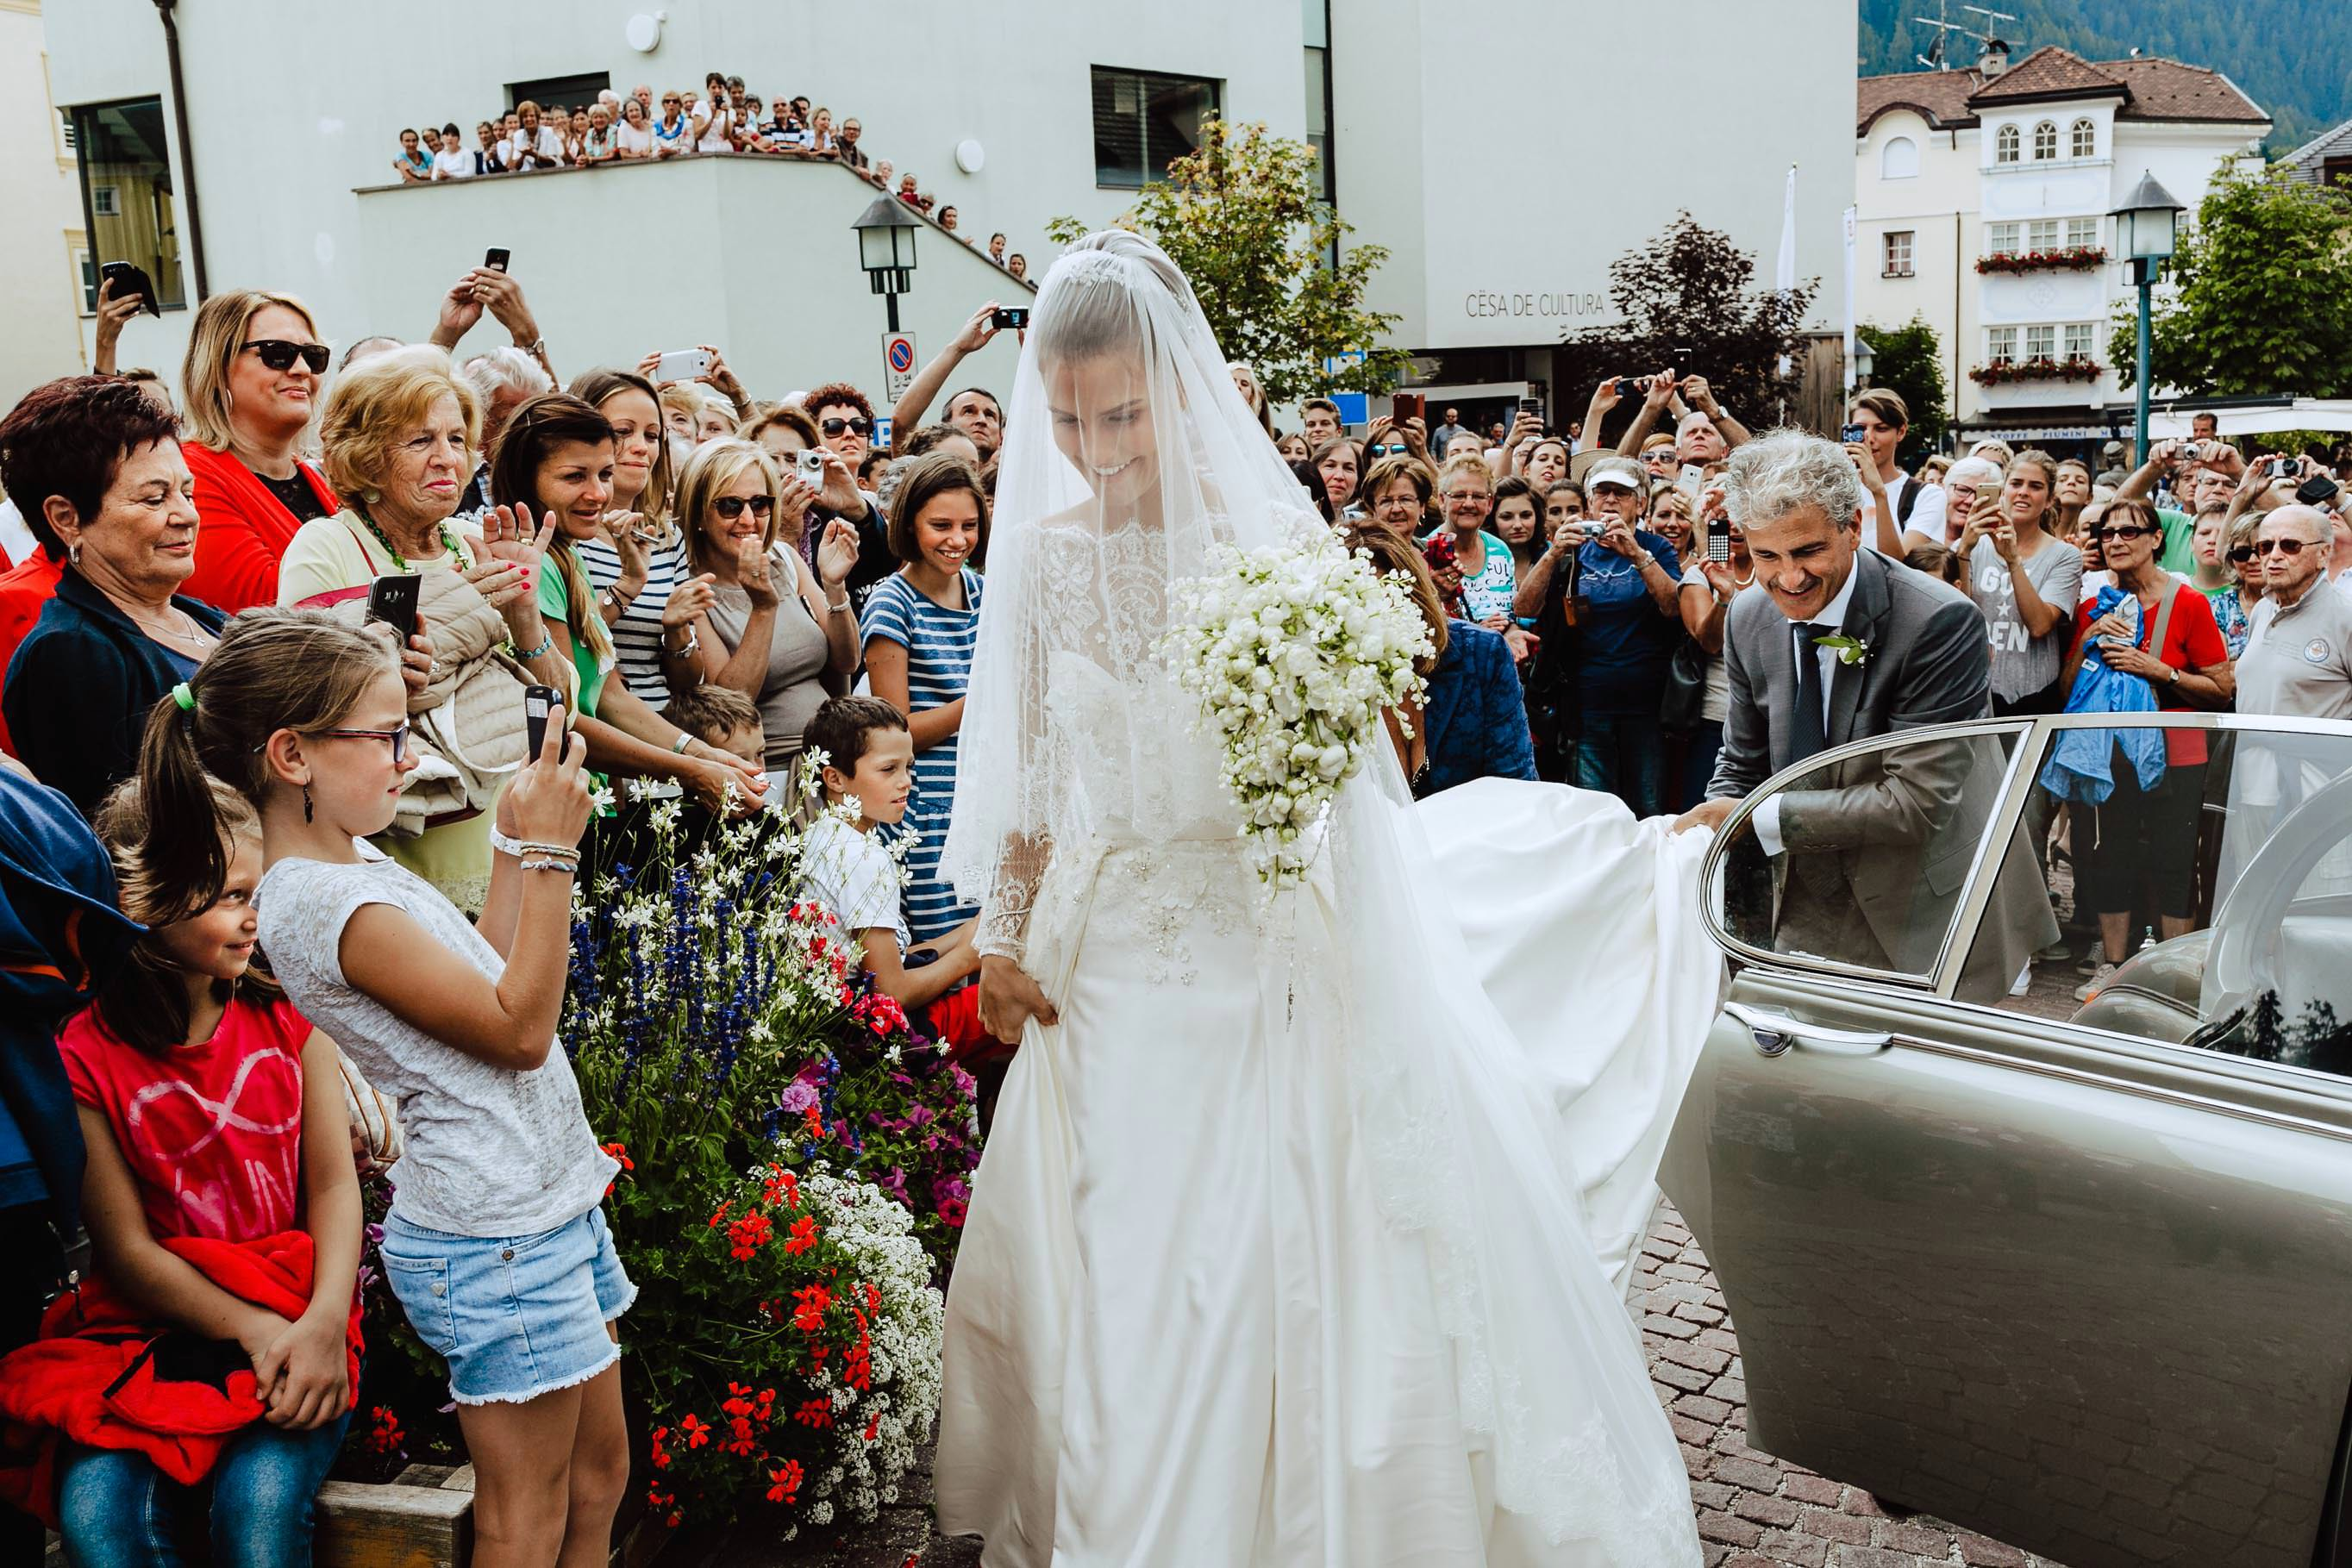 epifania del signore bride with crowd people wedding ortisei